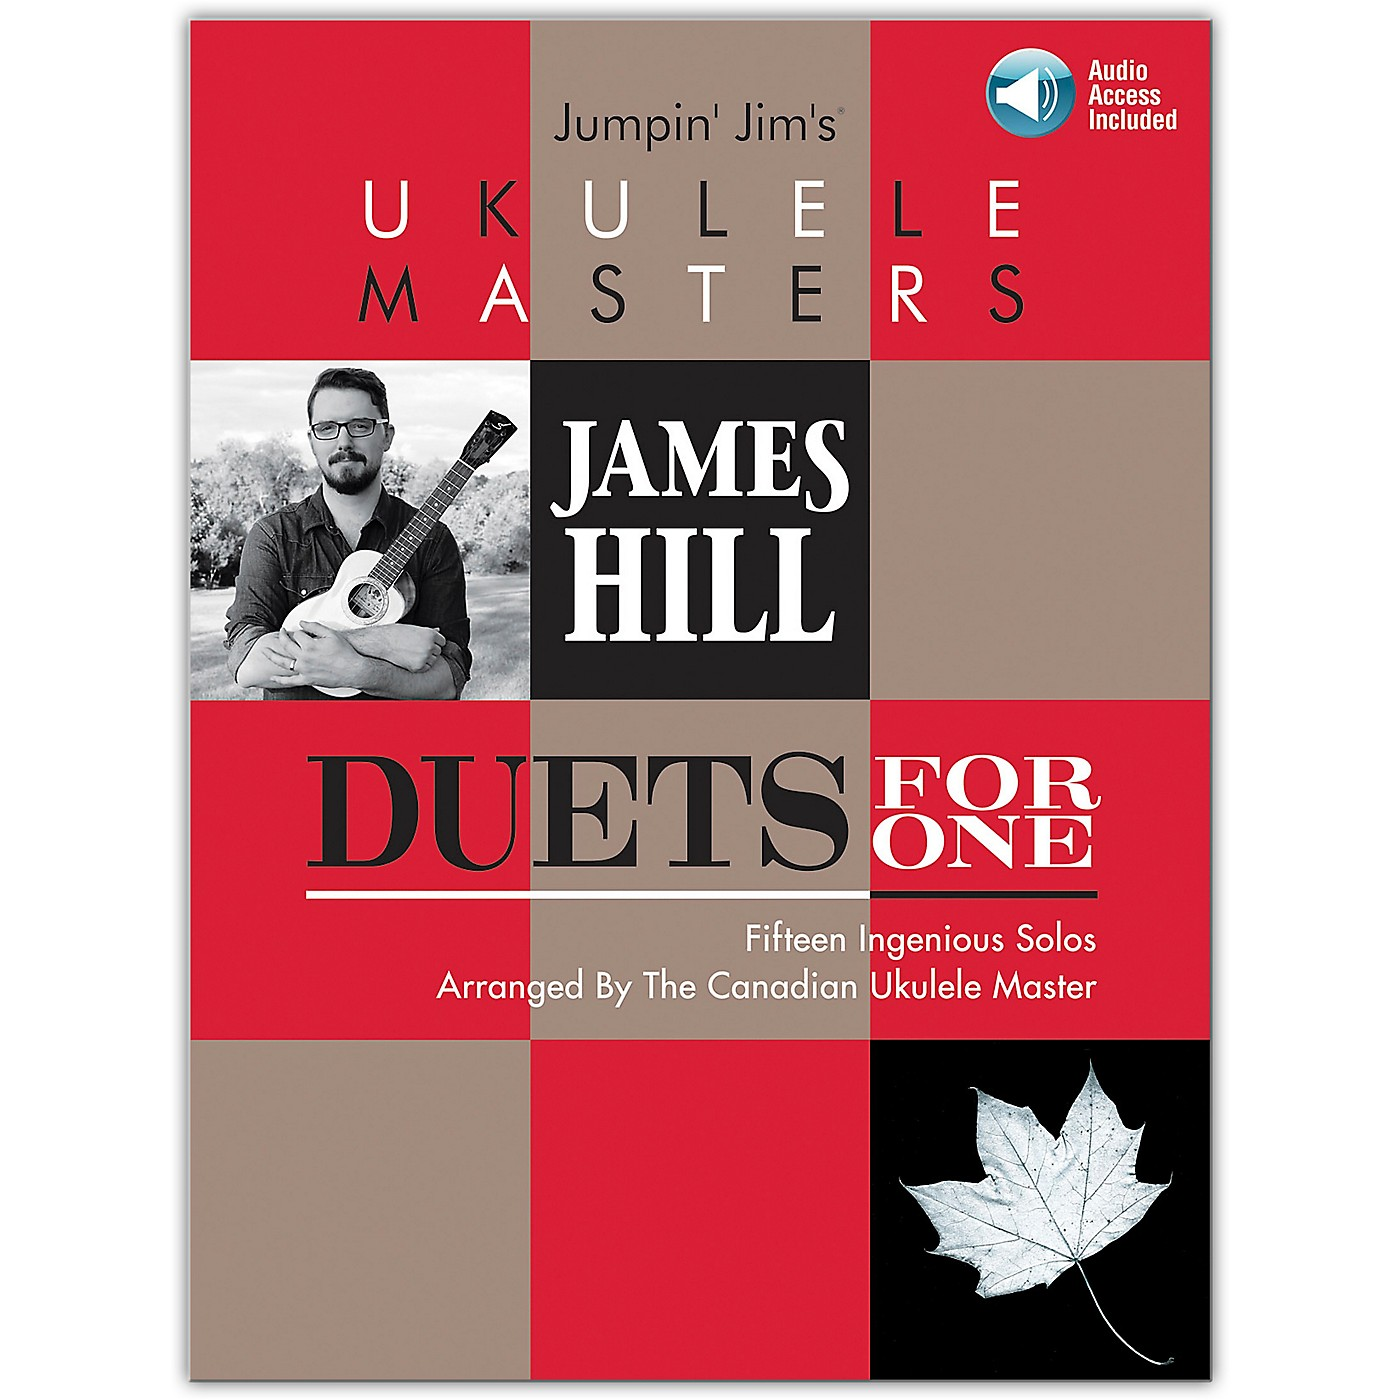 Hal Leonard Jumpin' Jim's Ukulele Masters: James Hill - Duets For One Book/Audio Online thumbnail